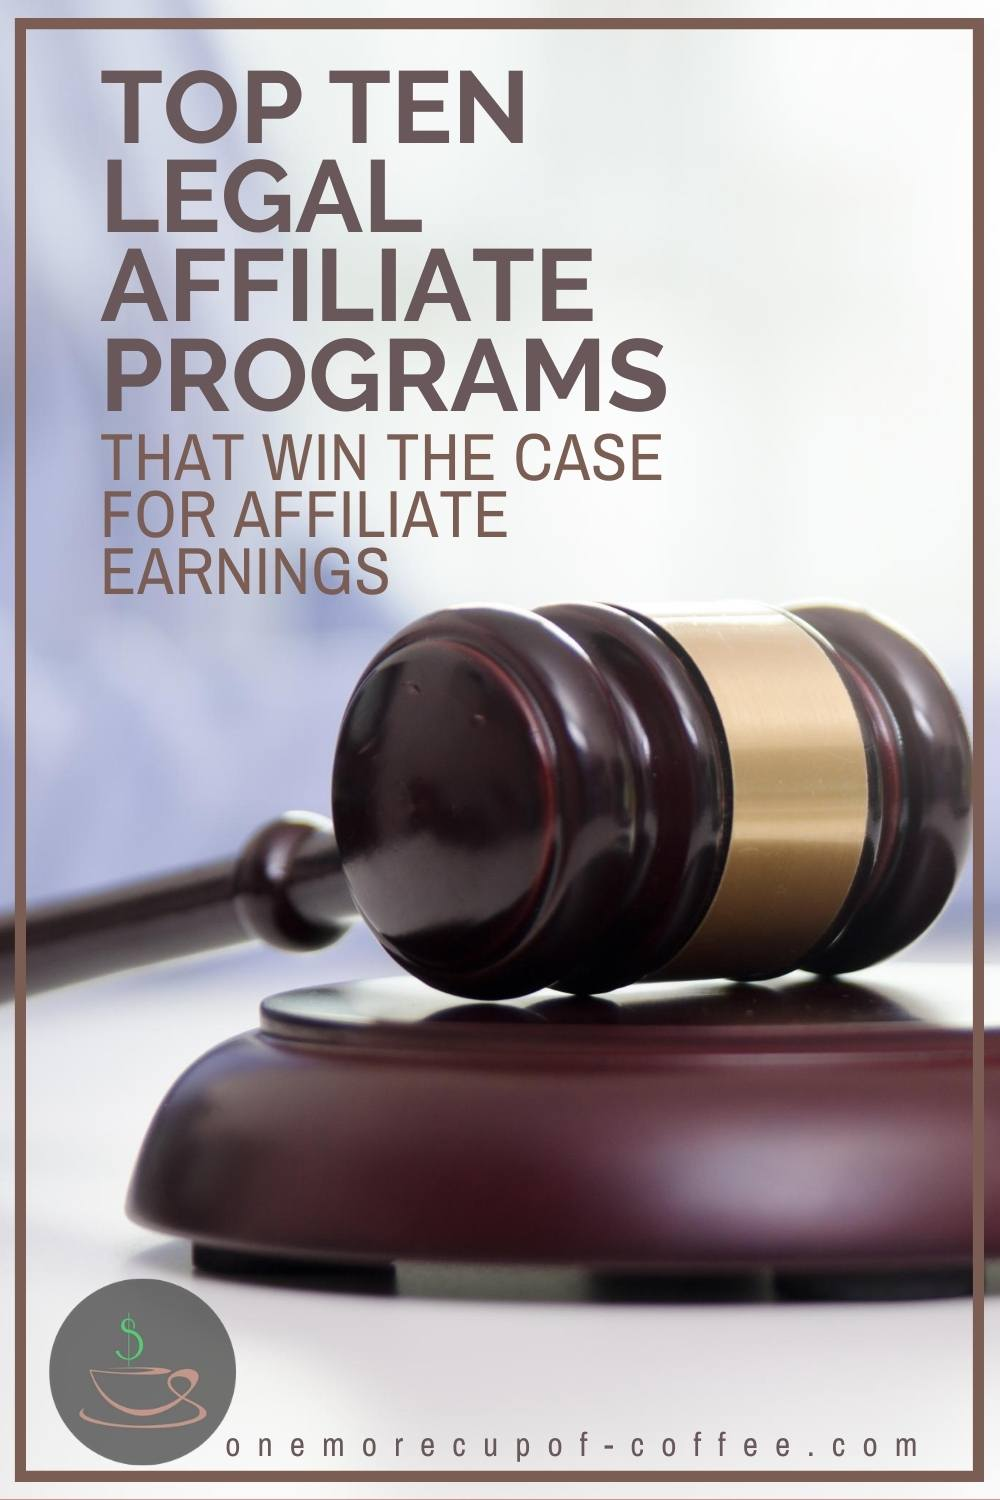 """closeup image of gavel with text overlay """"Top Ten Legal Affiliate Programs That Win The Case For Affiliate Earnings"""""""